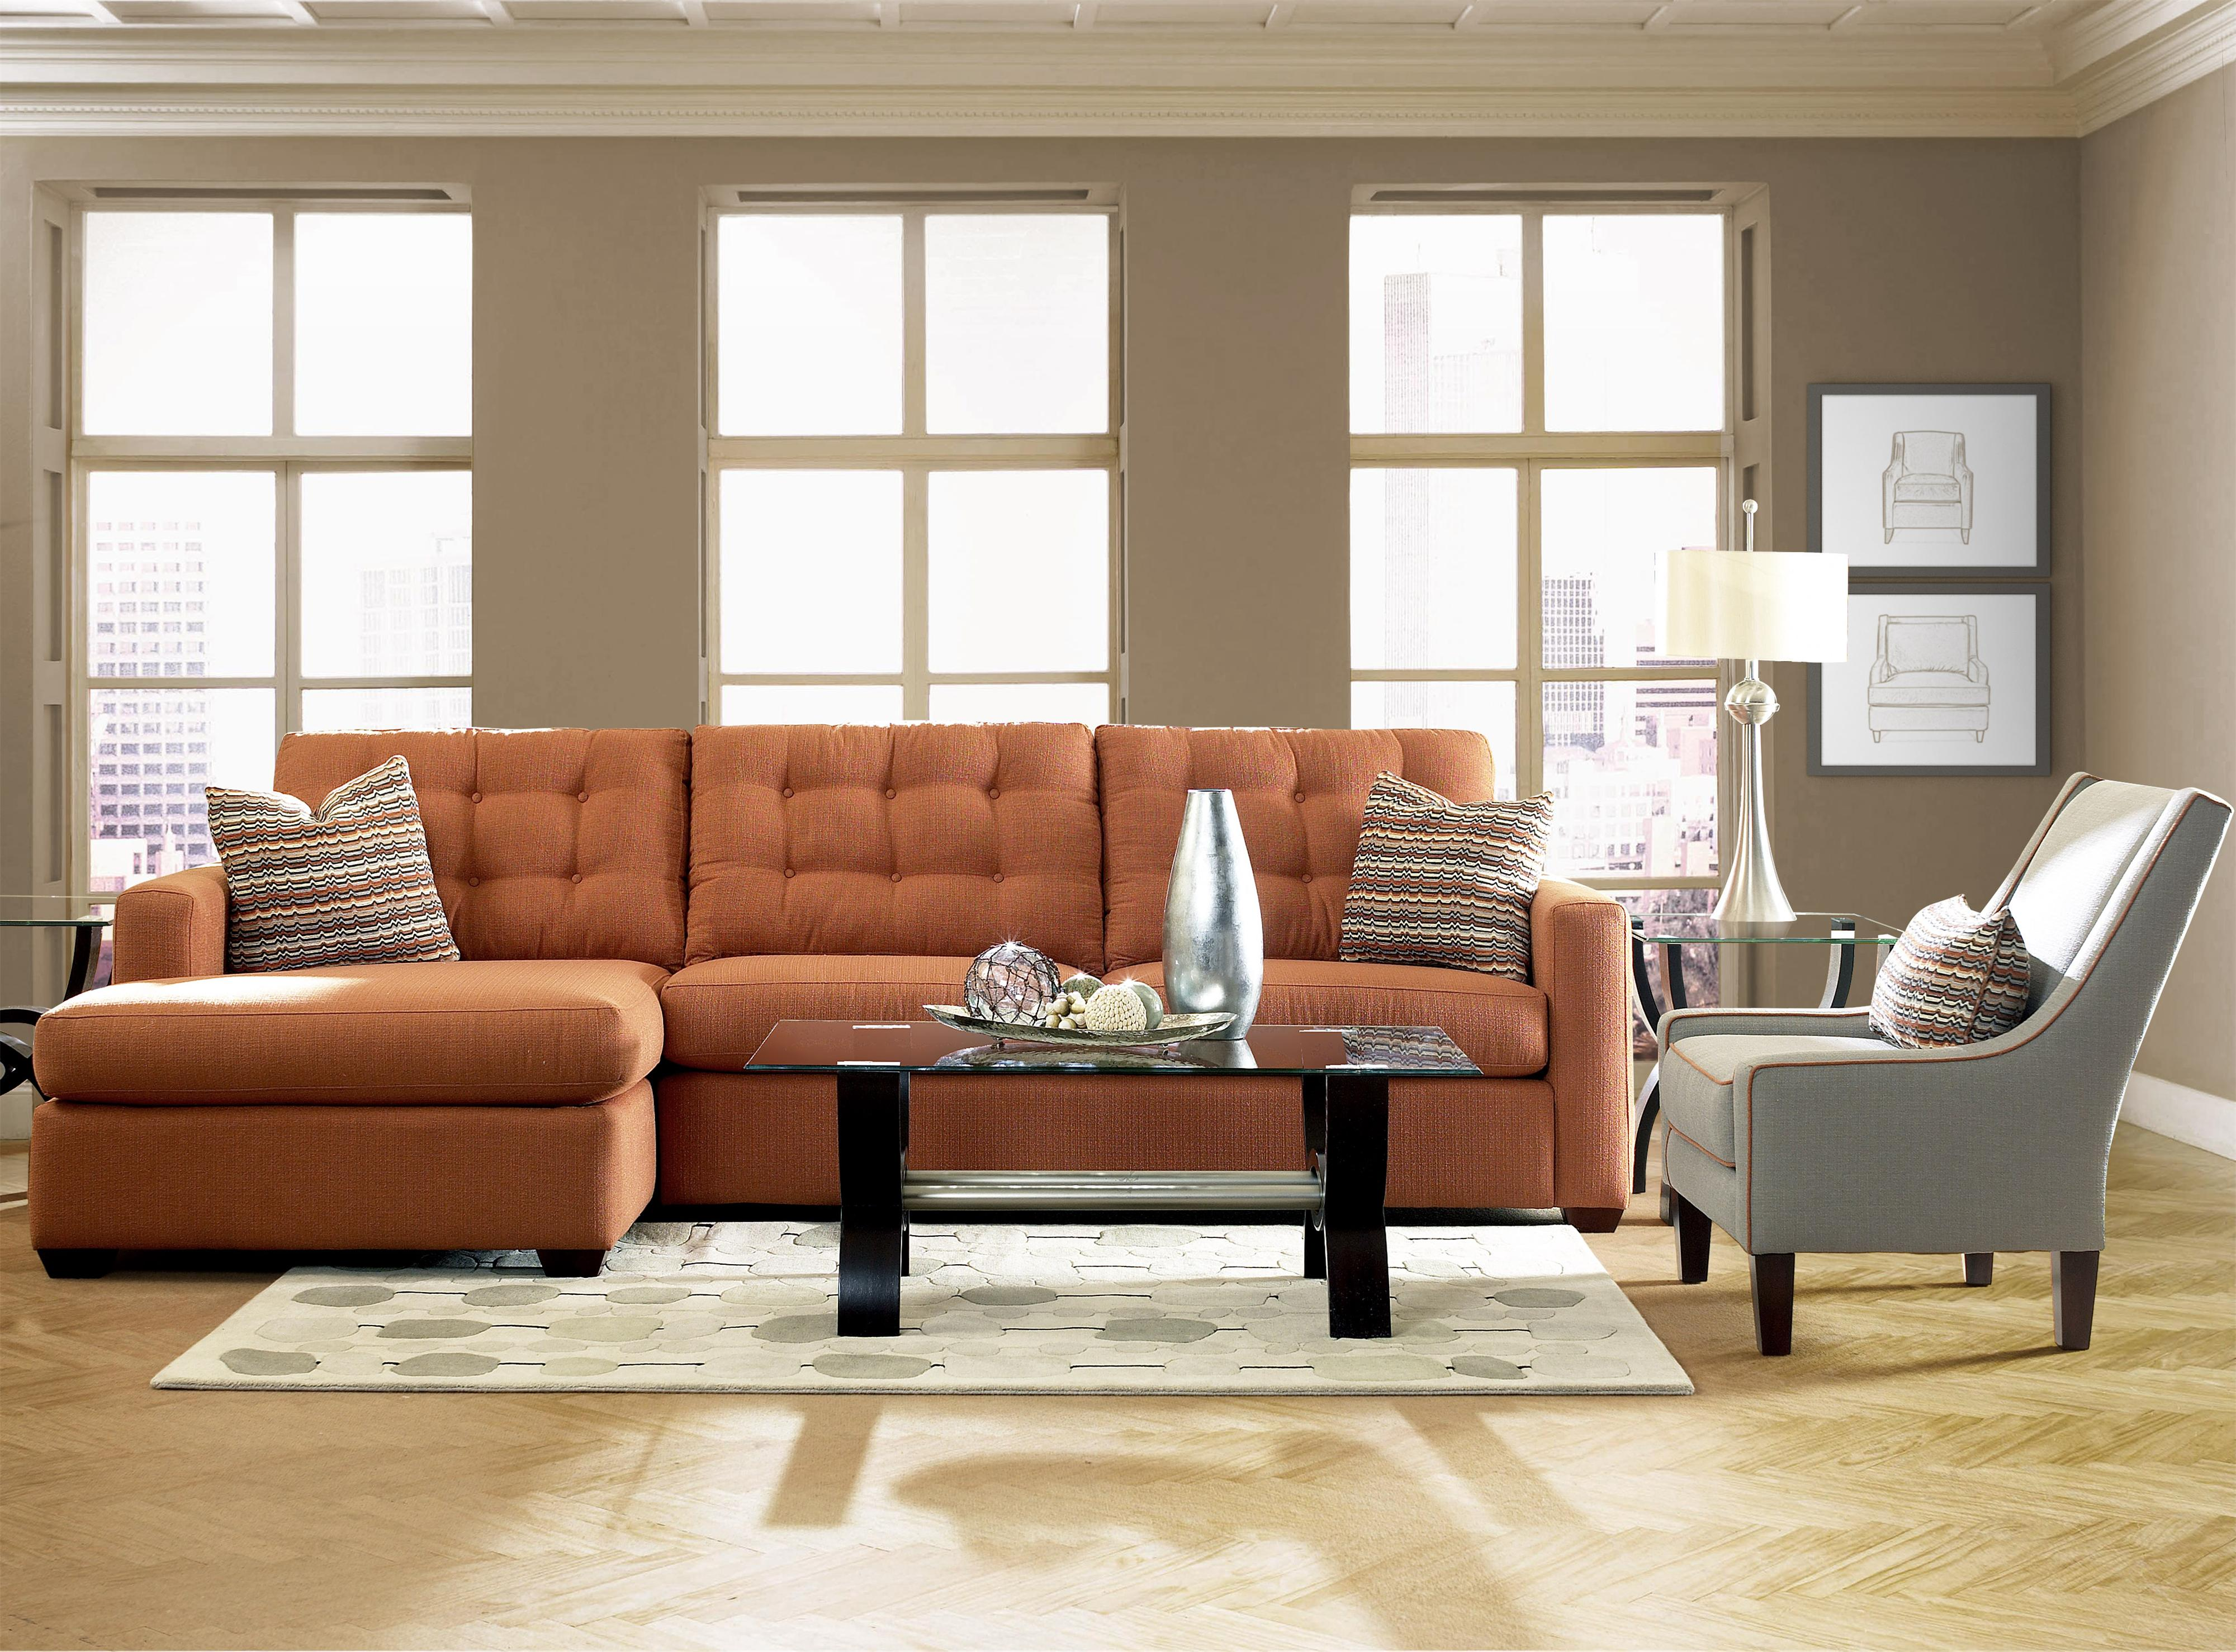 Sectional Sofa : chaise lounge leather sofa - Sectionals, Sofas & Couches